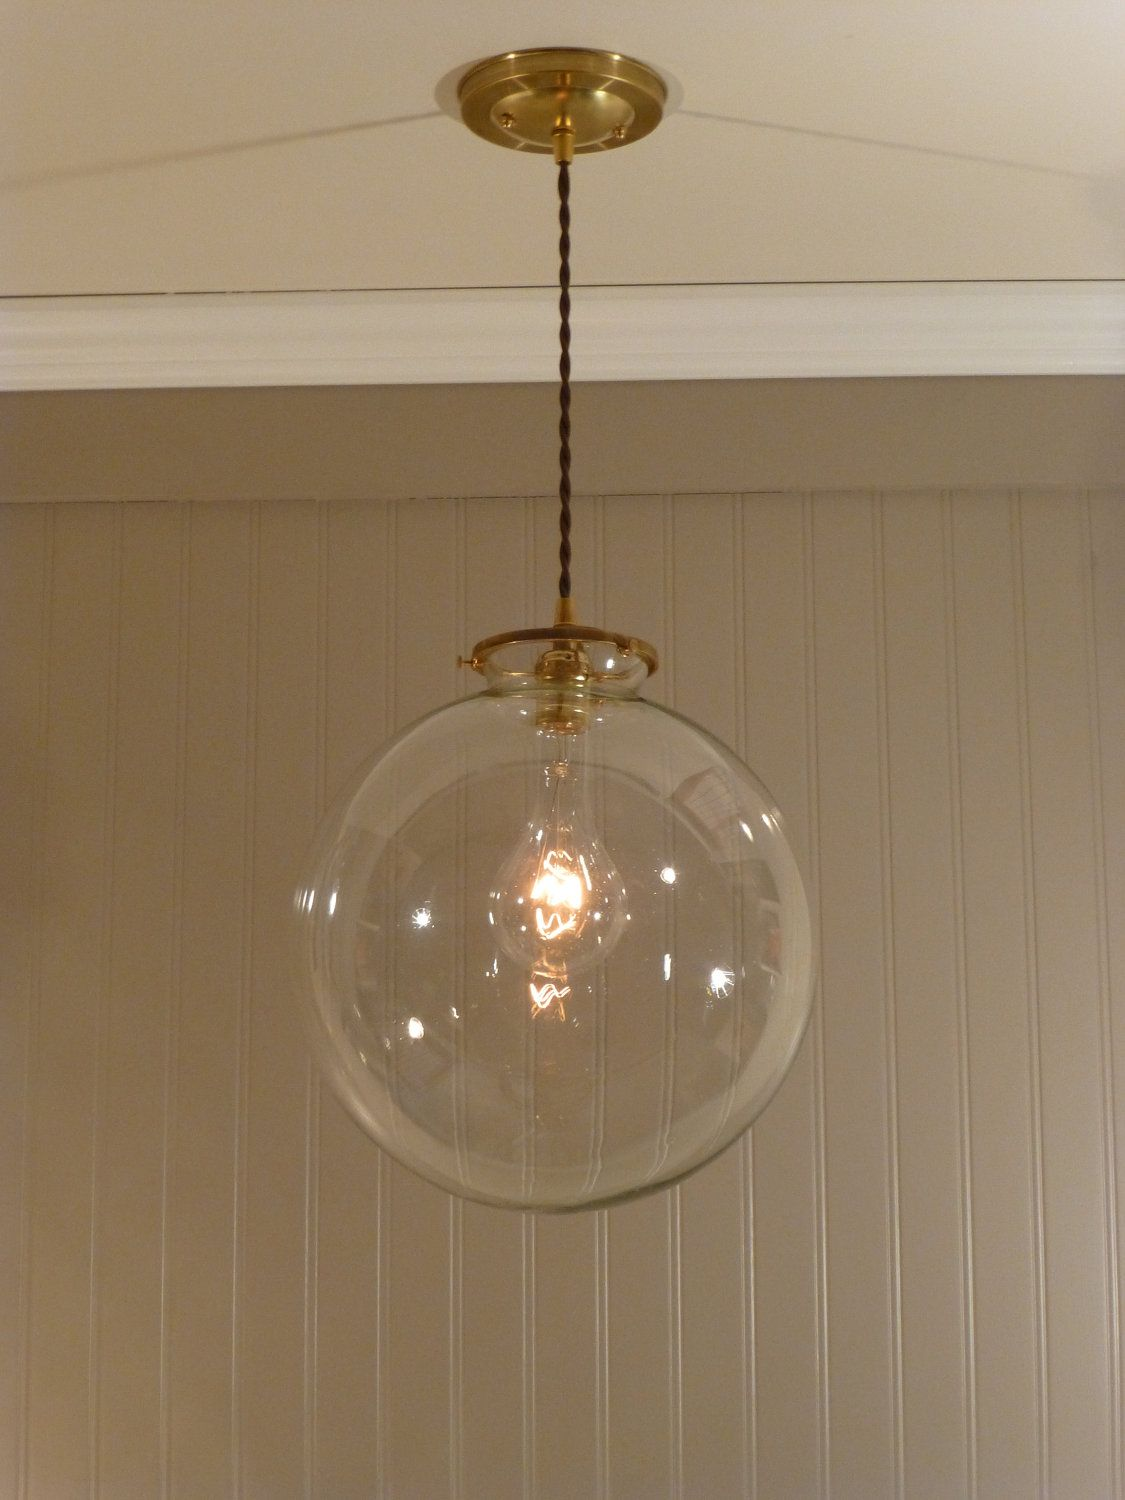 Glass Globe Light Pendant Brass Pendant Light With A 12 Inch Clear Glass Globe For